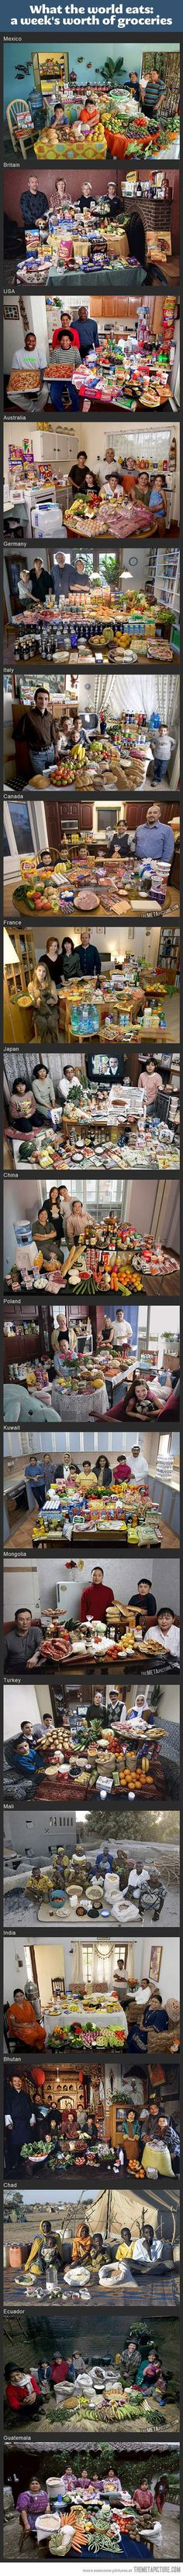 A week's worth of groceries around the world… Exercise in cultural awareness